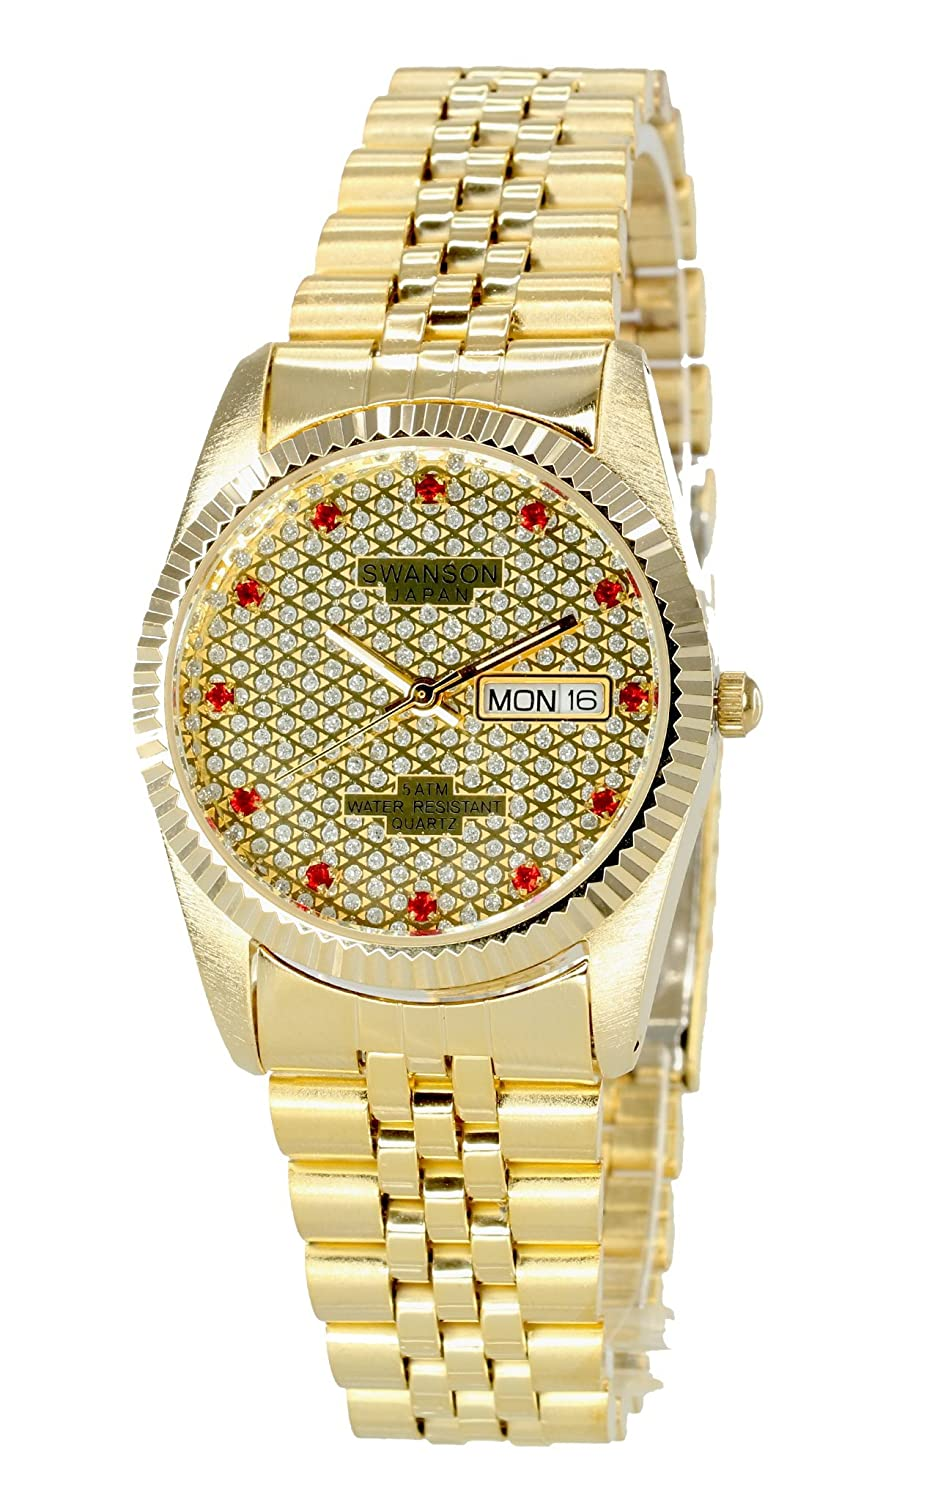 Amazon.com: Swanson Japan Mens Gold Day-Date Watch Red Stone Gold Dial: Swanson Japan: Watches